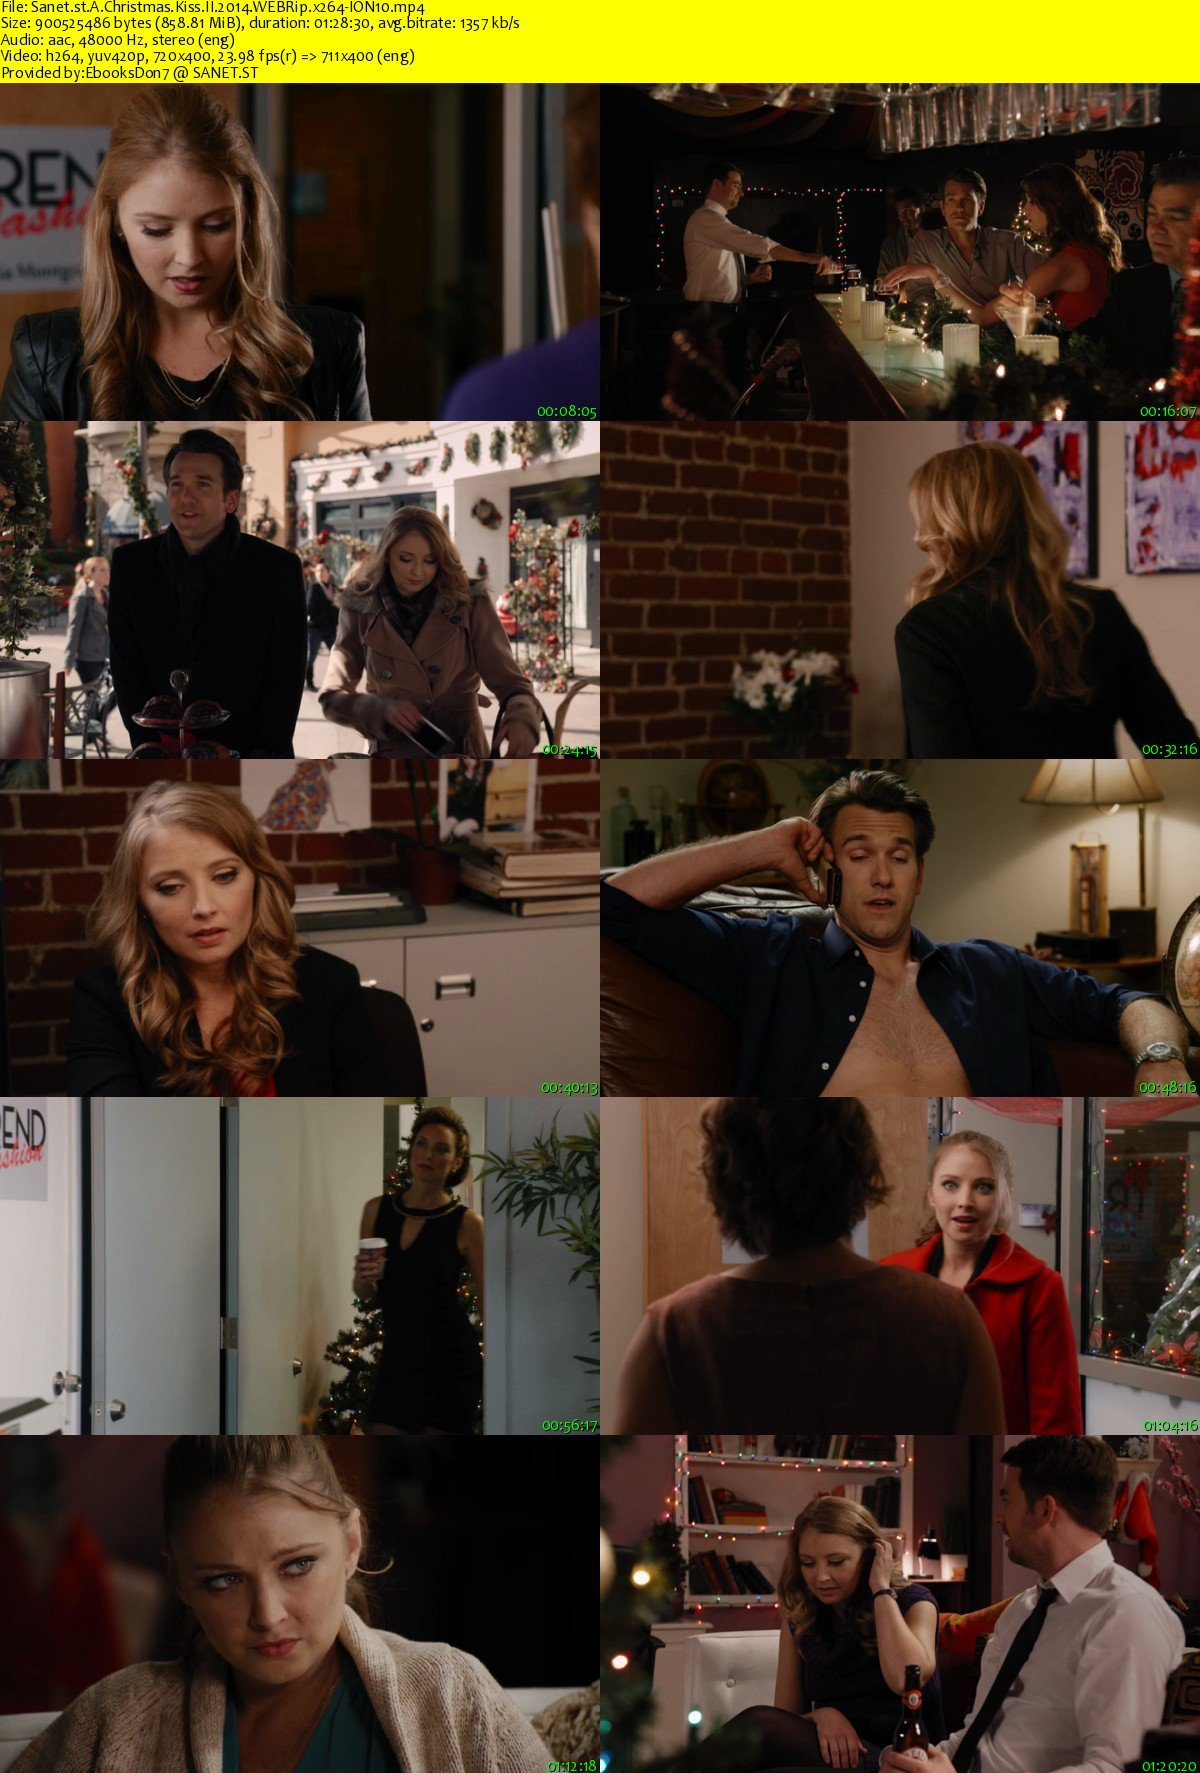 Christmas Kiss 2.Download A Christmas Kiss Ii 2014 Webrip X264 Ion10